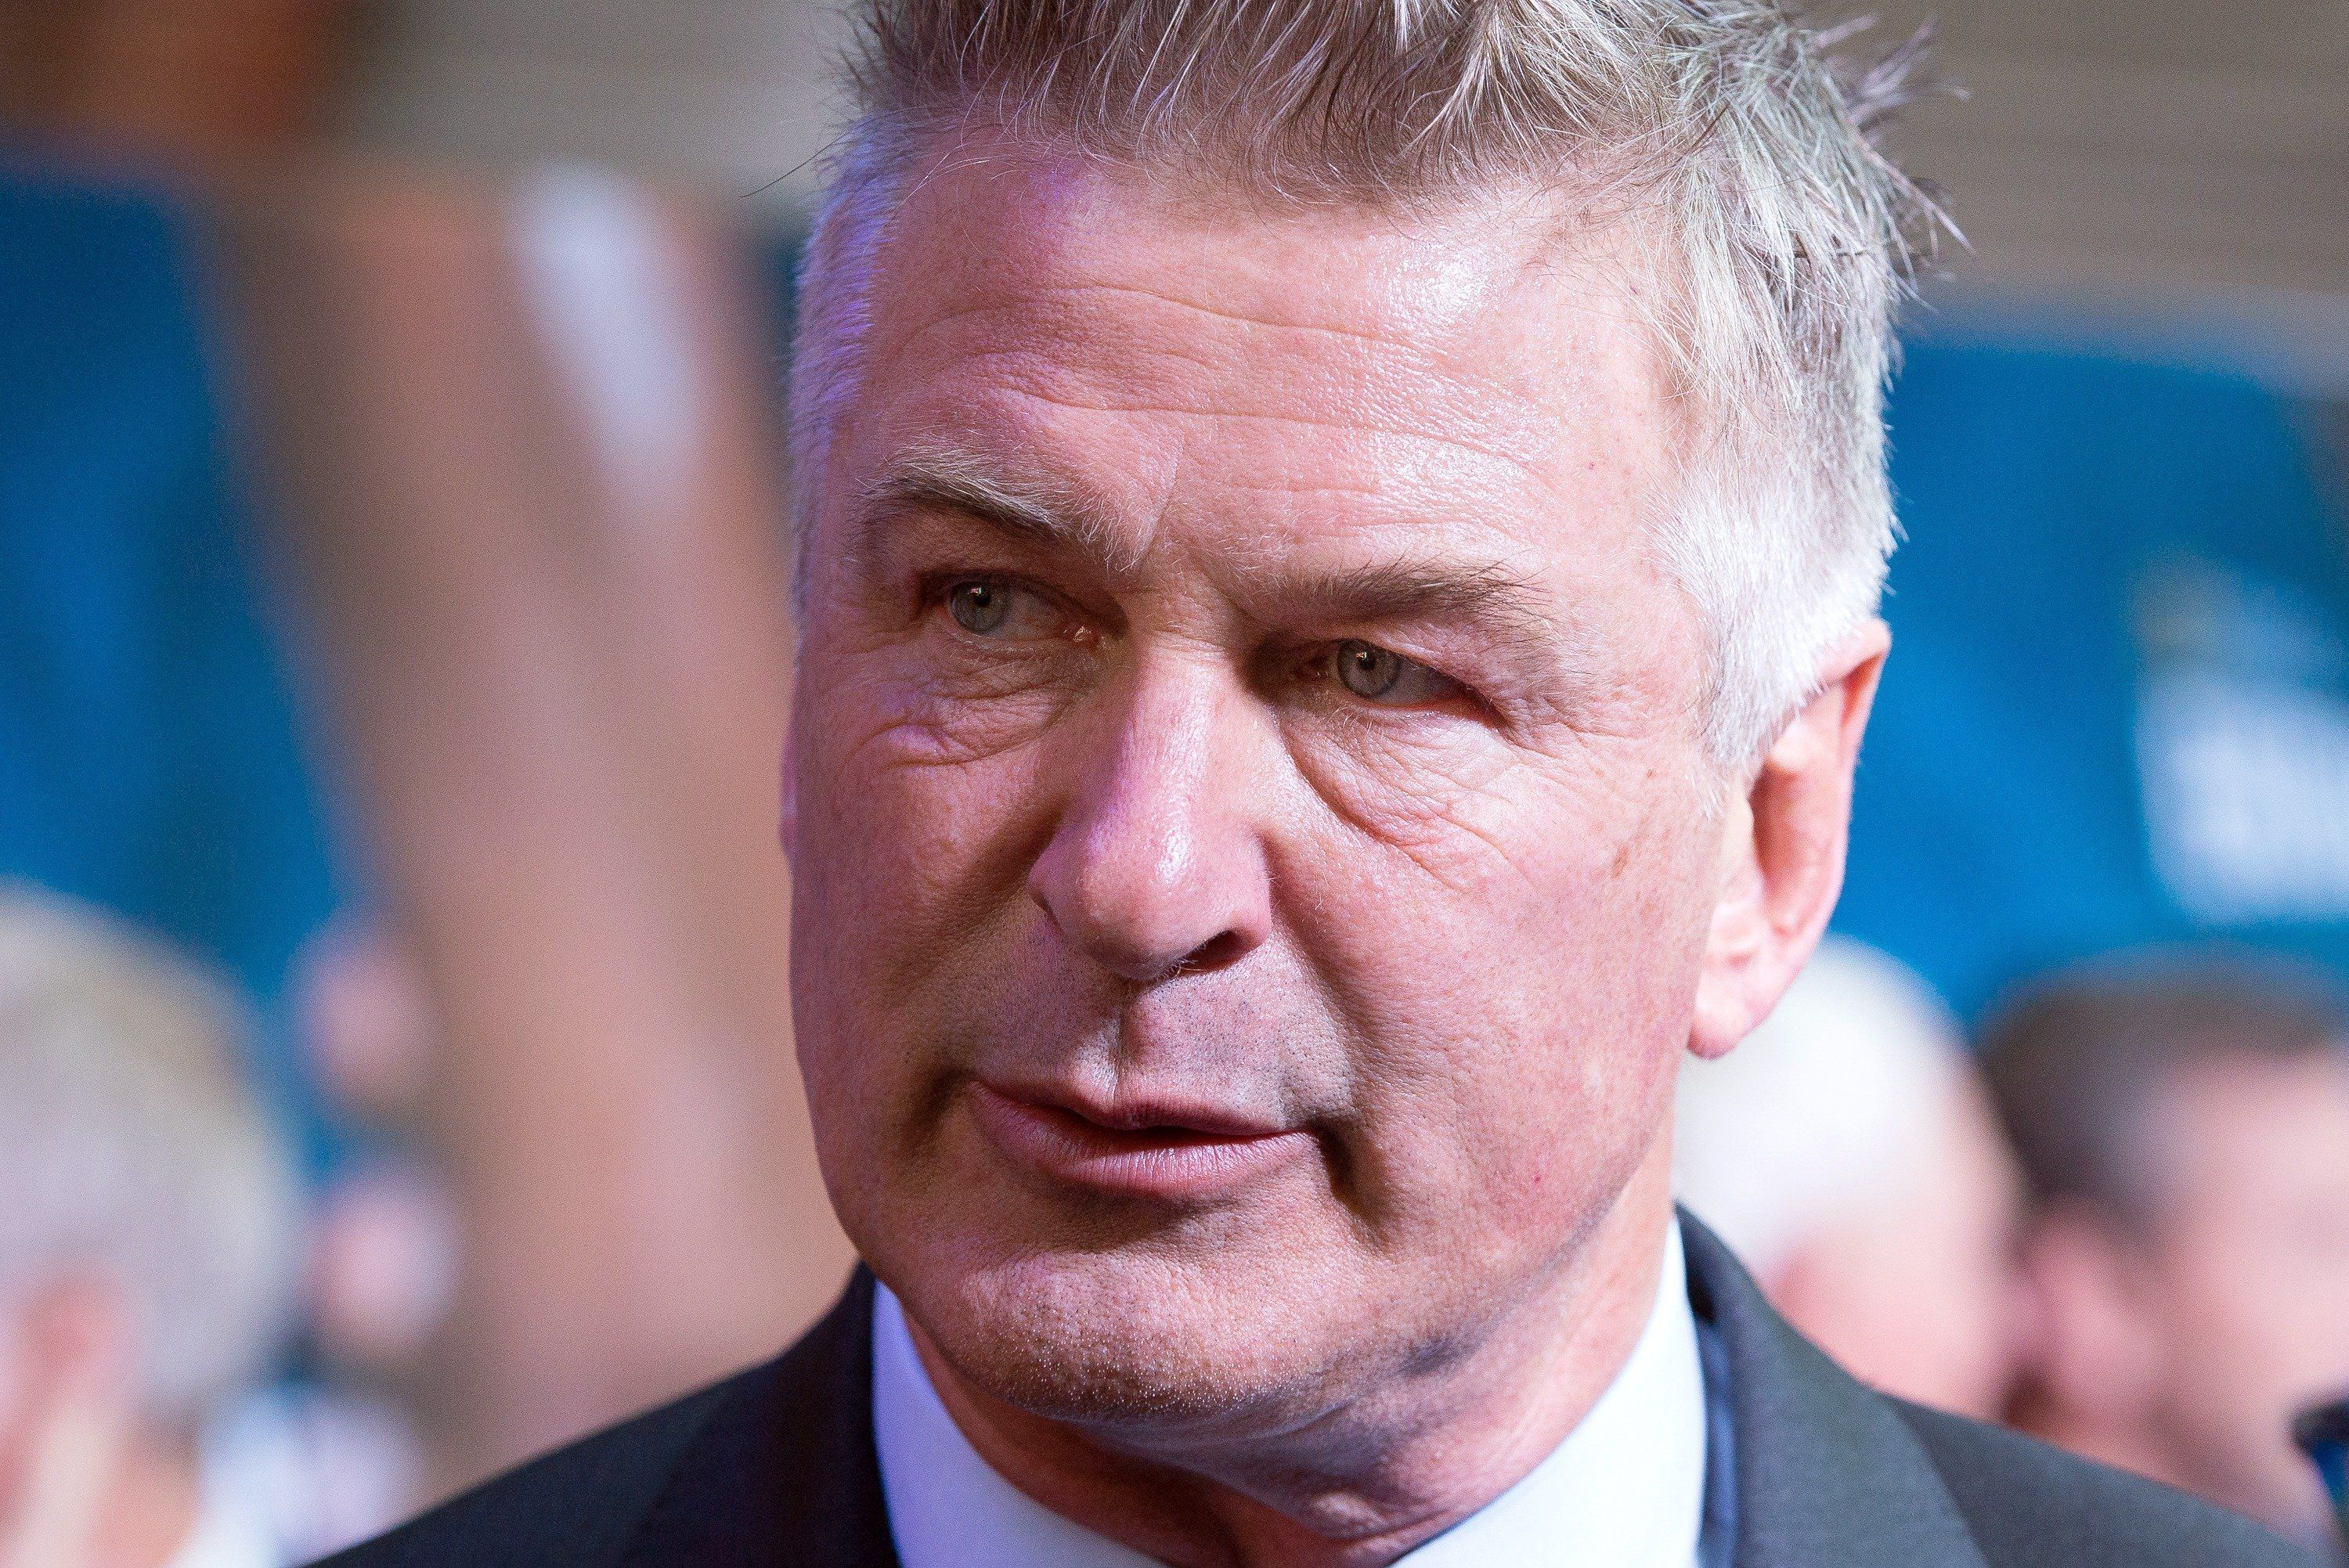 NEW YORK, NY - OCTOBER 04:  Alec Baldwin attends the National Geographic Encounter Blue Carpet VIP Preview Celebration on October 4, 2017 in New York City.  (Photo by Mike Pont/WireImage)